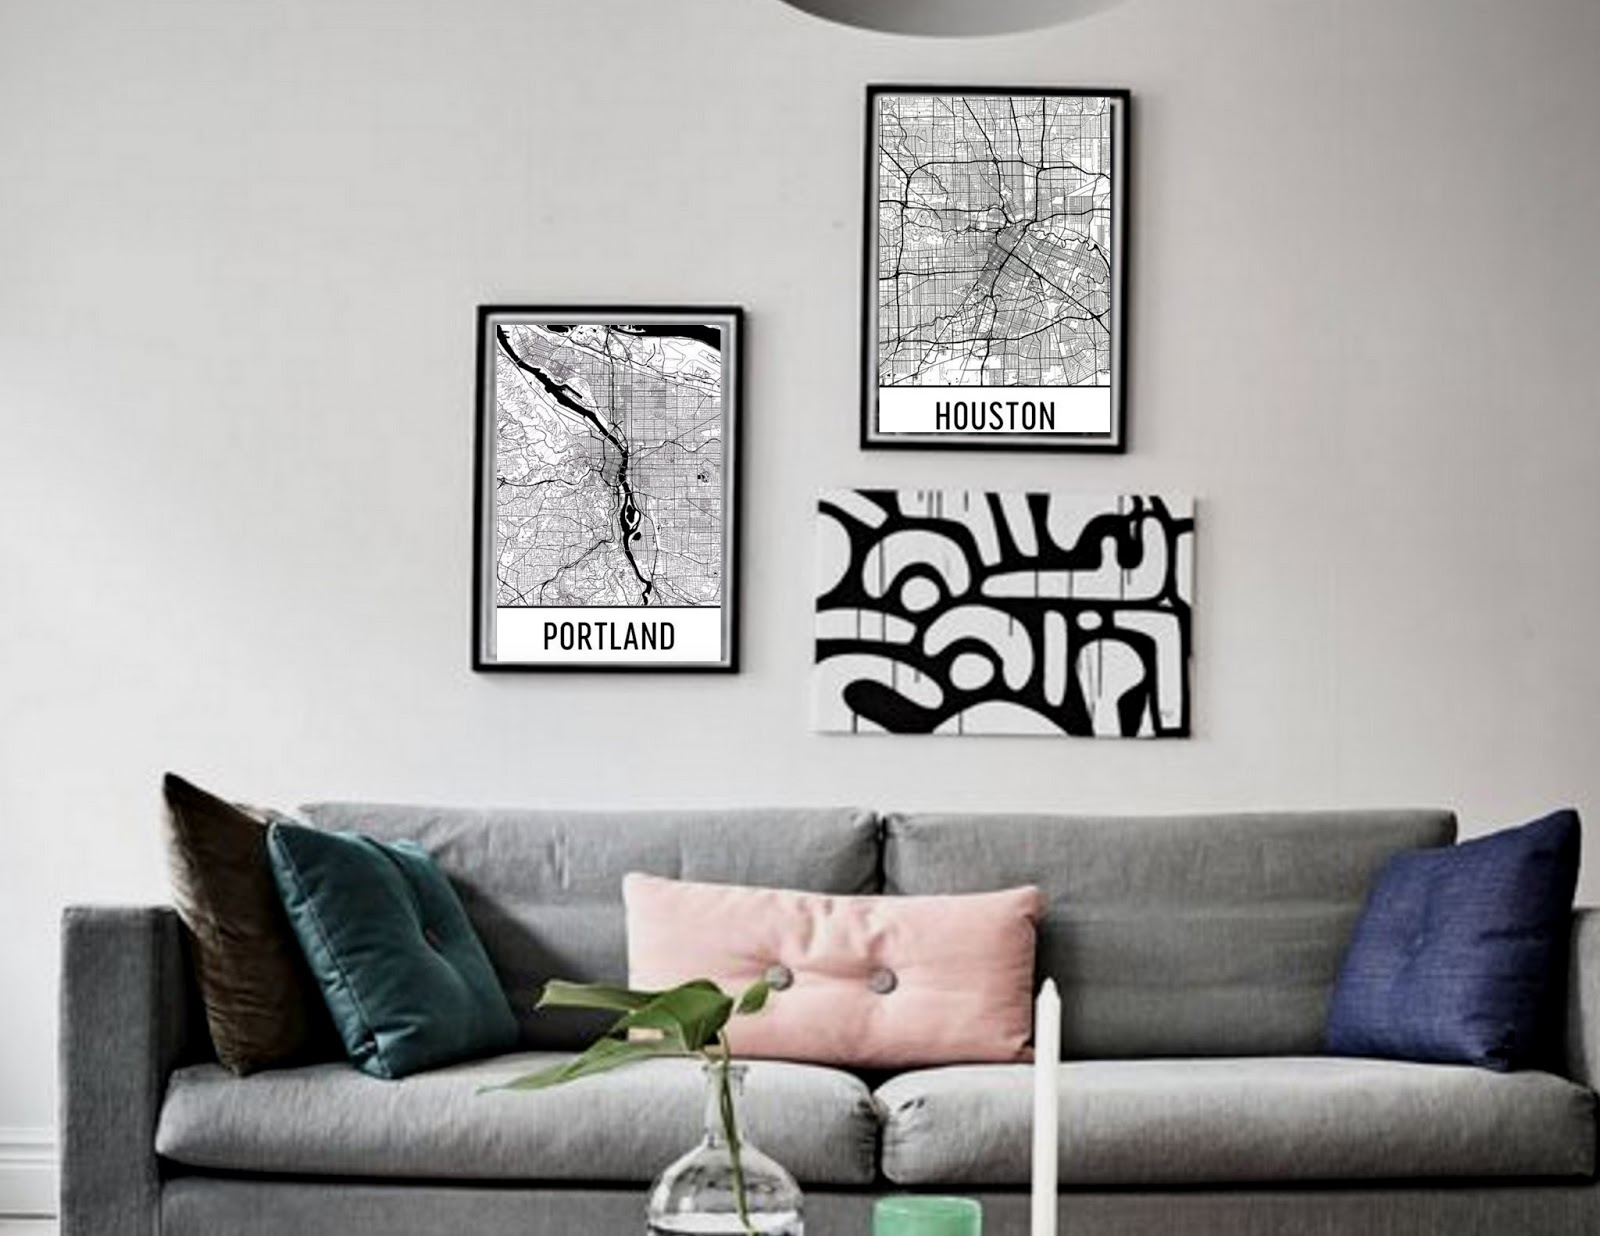 I Have A New Love For Leather Couches And House Plants These Map Art Posters Layer In So Well Cant Wait To Share My Space With You